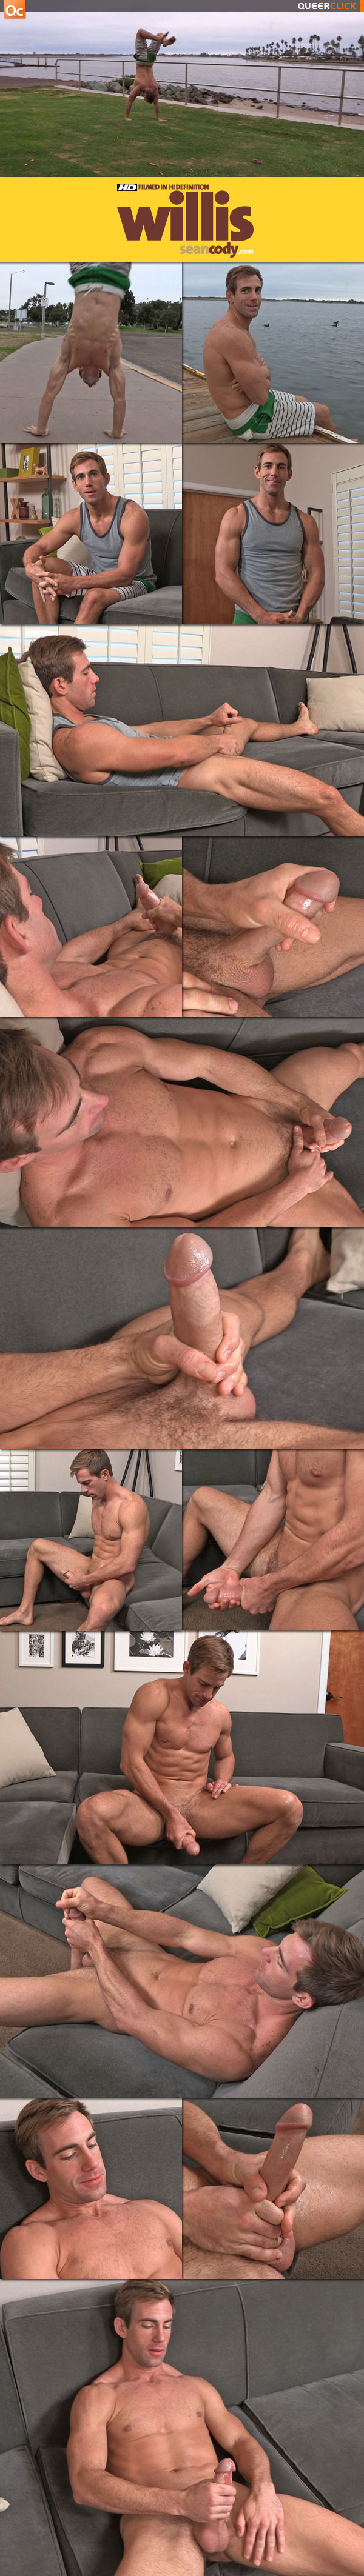 Sean Cody: Willis(2)